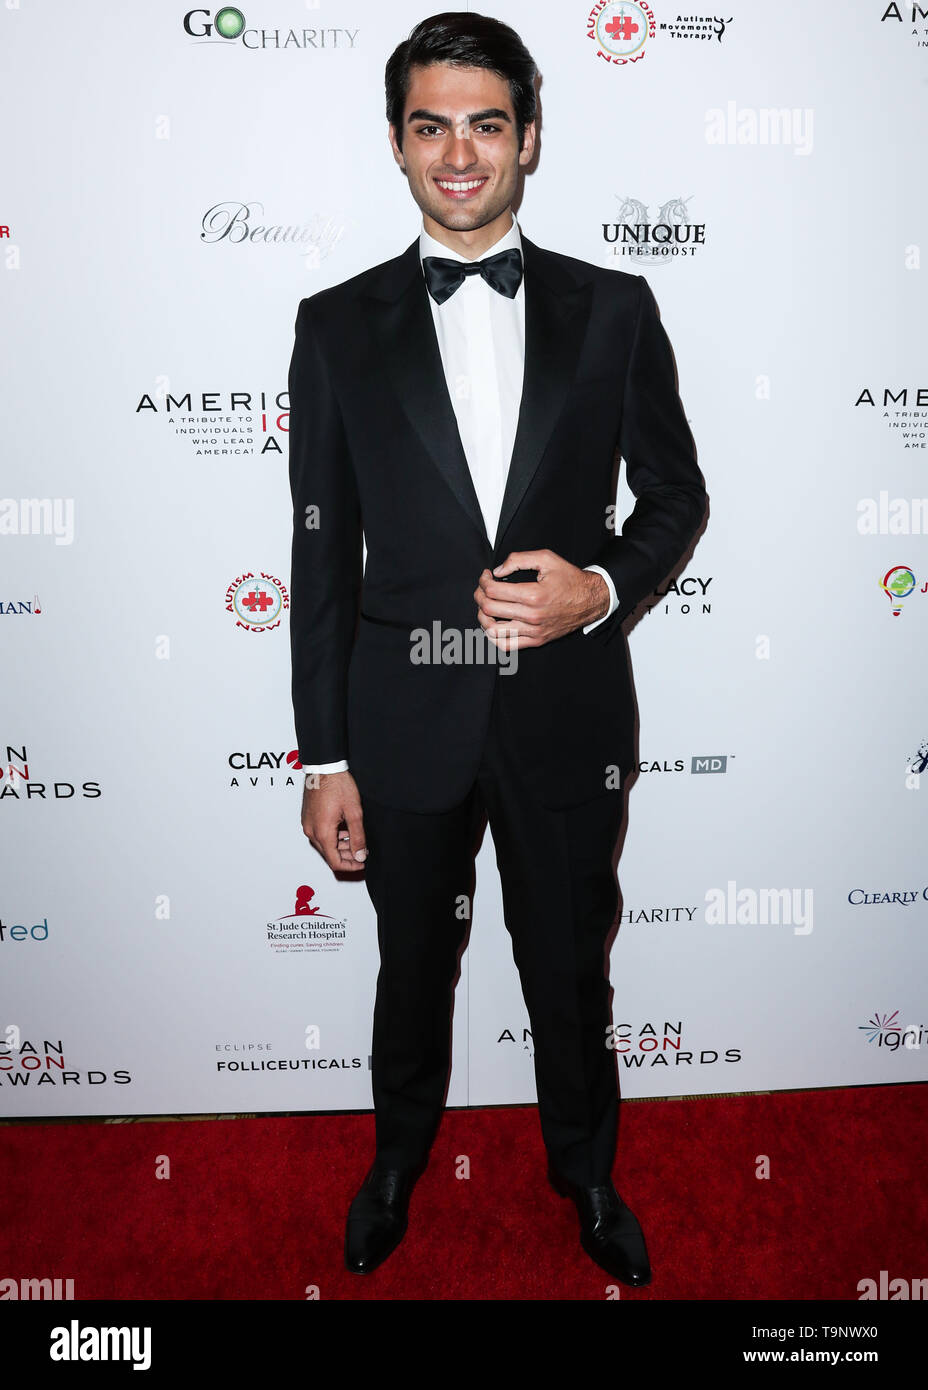 BEVERLY HILLS, LOS ANGELES, CA, USA - MAY 19: Matteo Bocelli arrives at the 2019 American Icon Awards held at the Beverly Wilshire Four Seasons Hotel on May 19, 2019 in Beverly Hills, Los Angeles, California, United States. (Photo by Xavier Collin/Image Press Agency) - Stock Image